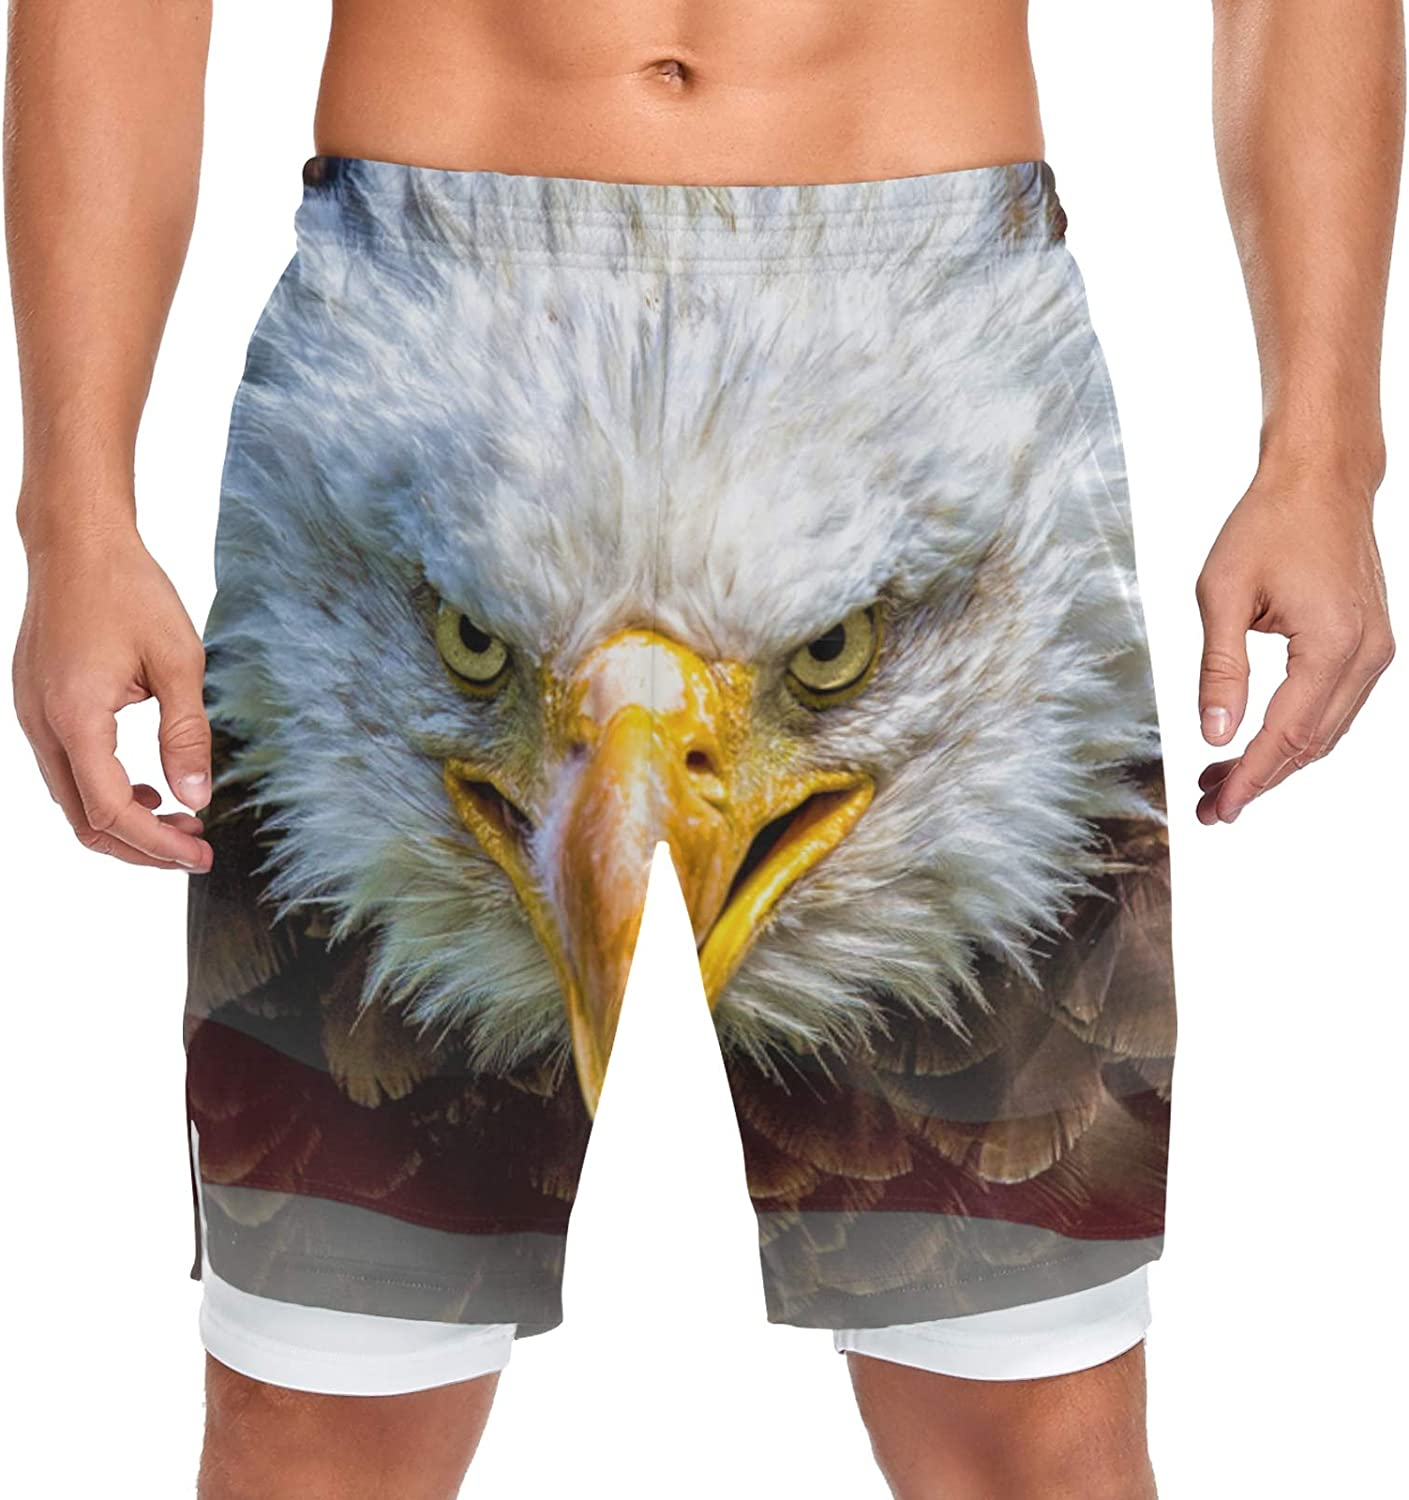 Running Shorts American Bald Max 48% OFF Eagle Men Sh Max 86% OFF Training Workout Sport